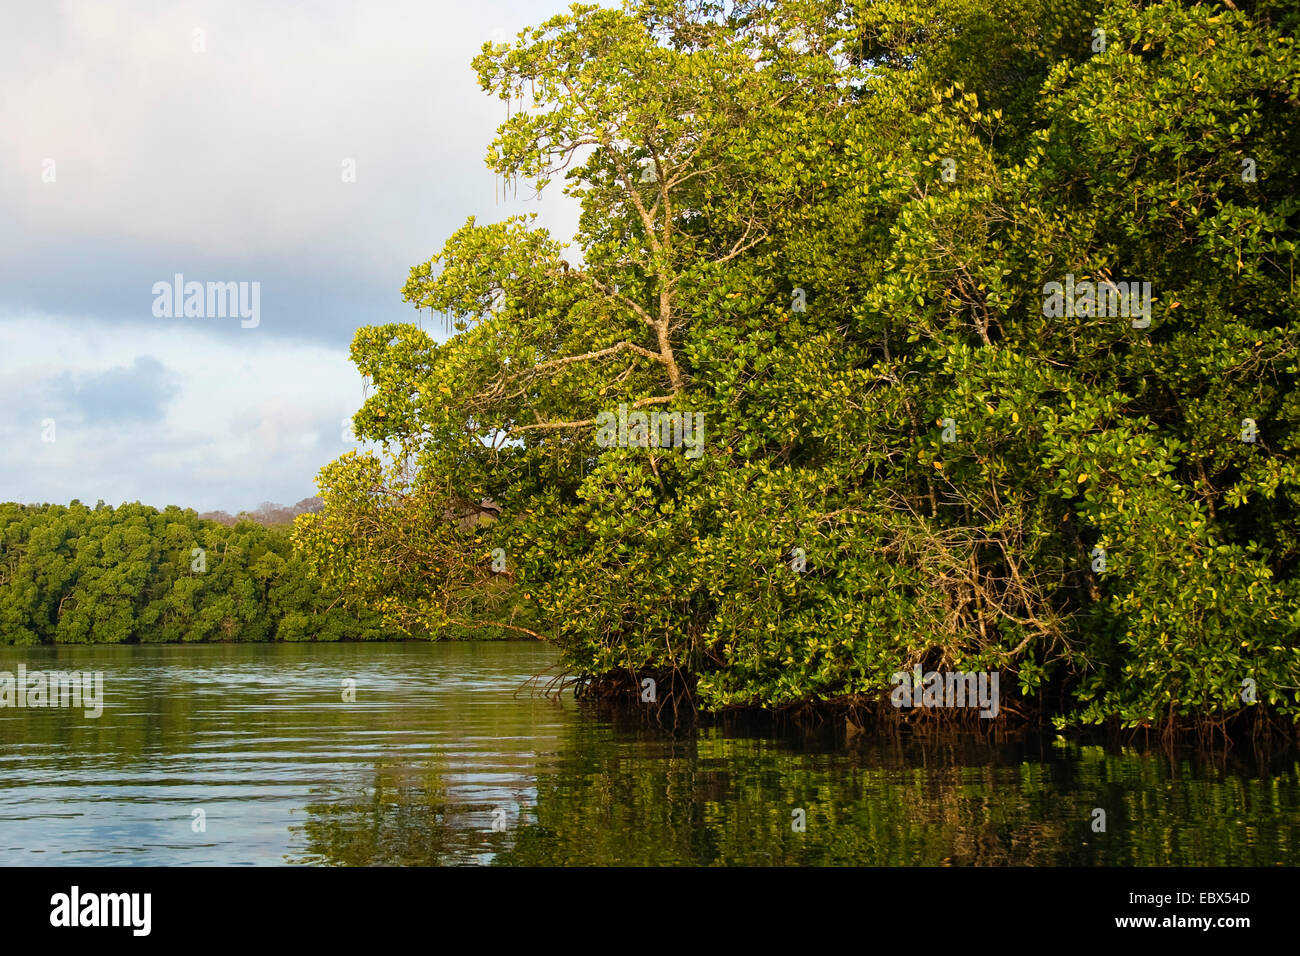 mangroves in the Austin Strait, India, Andaman Islands - Stock Image